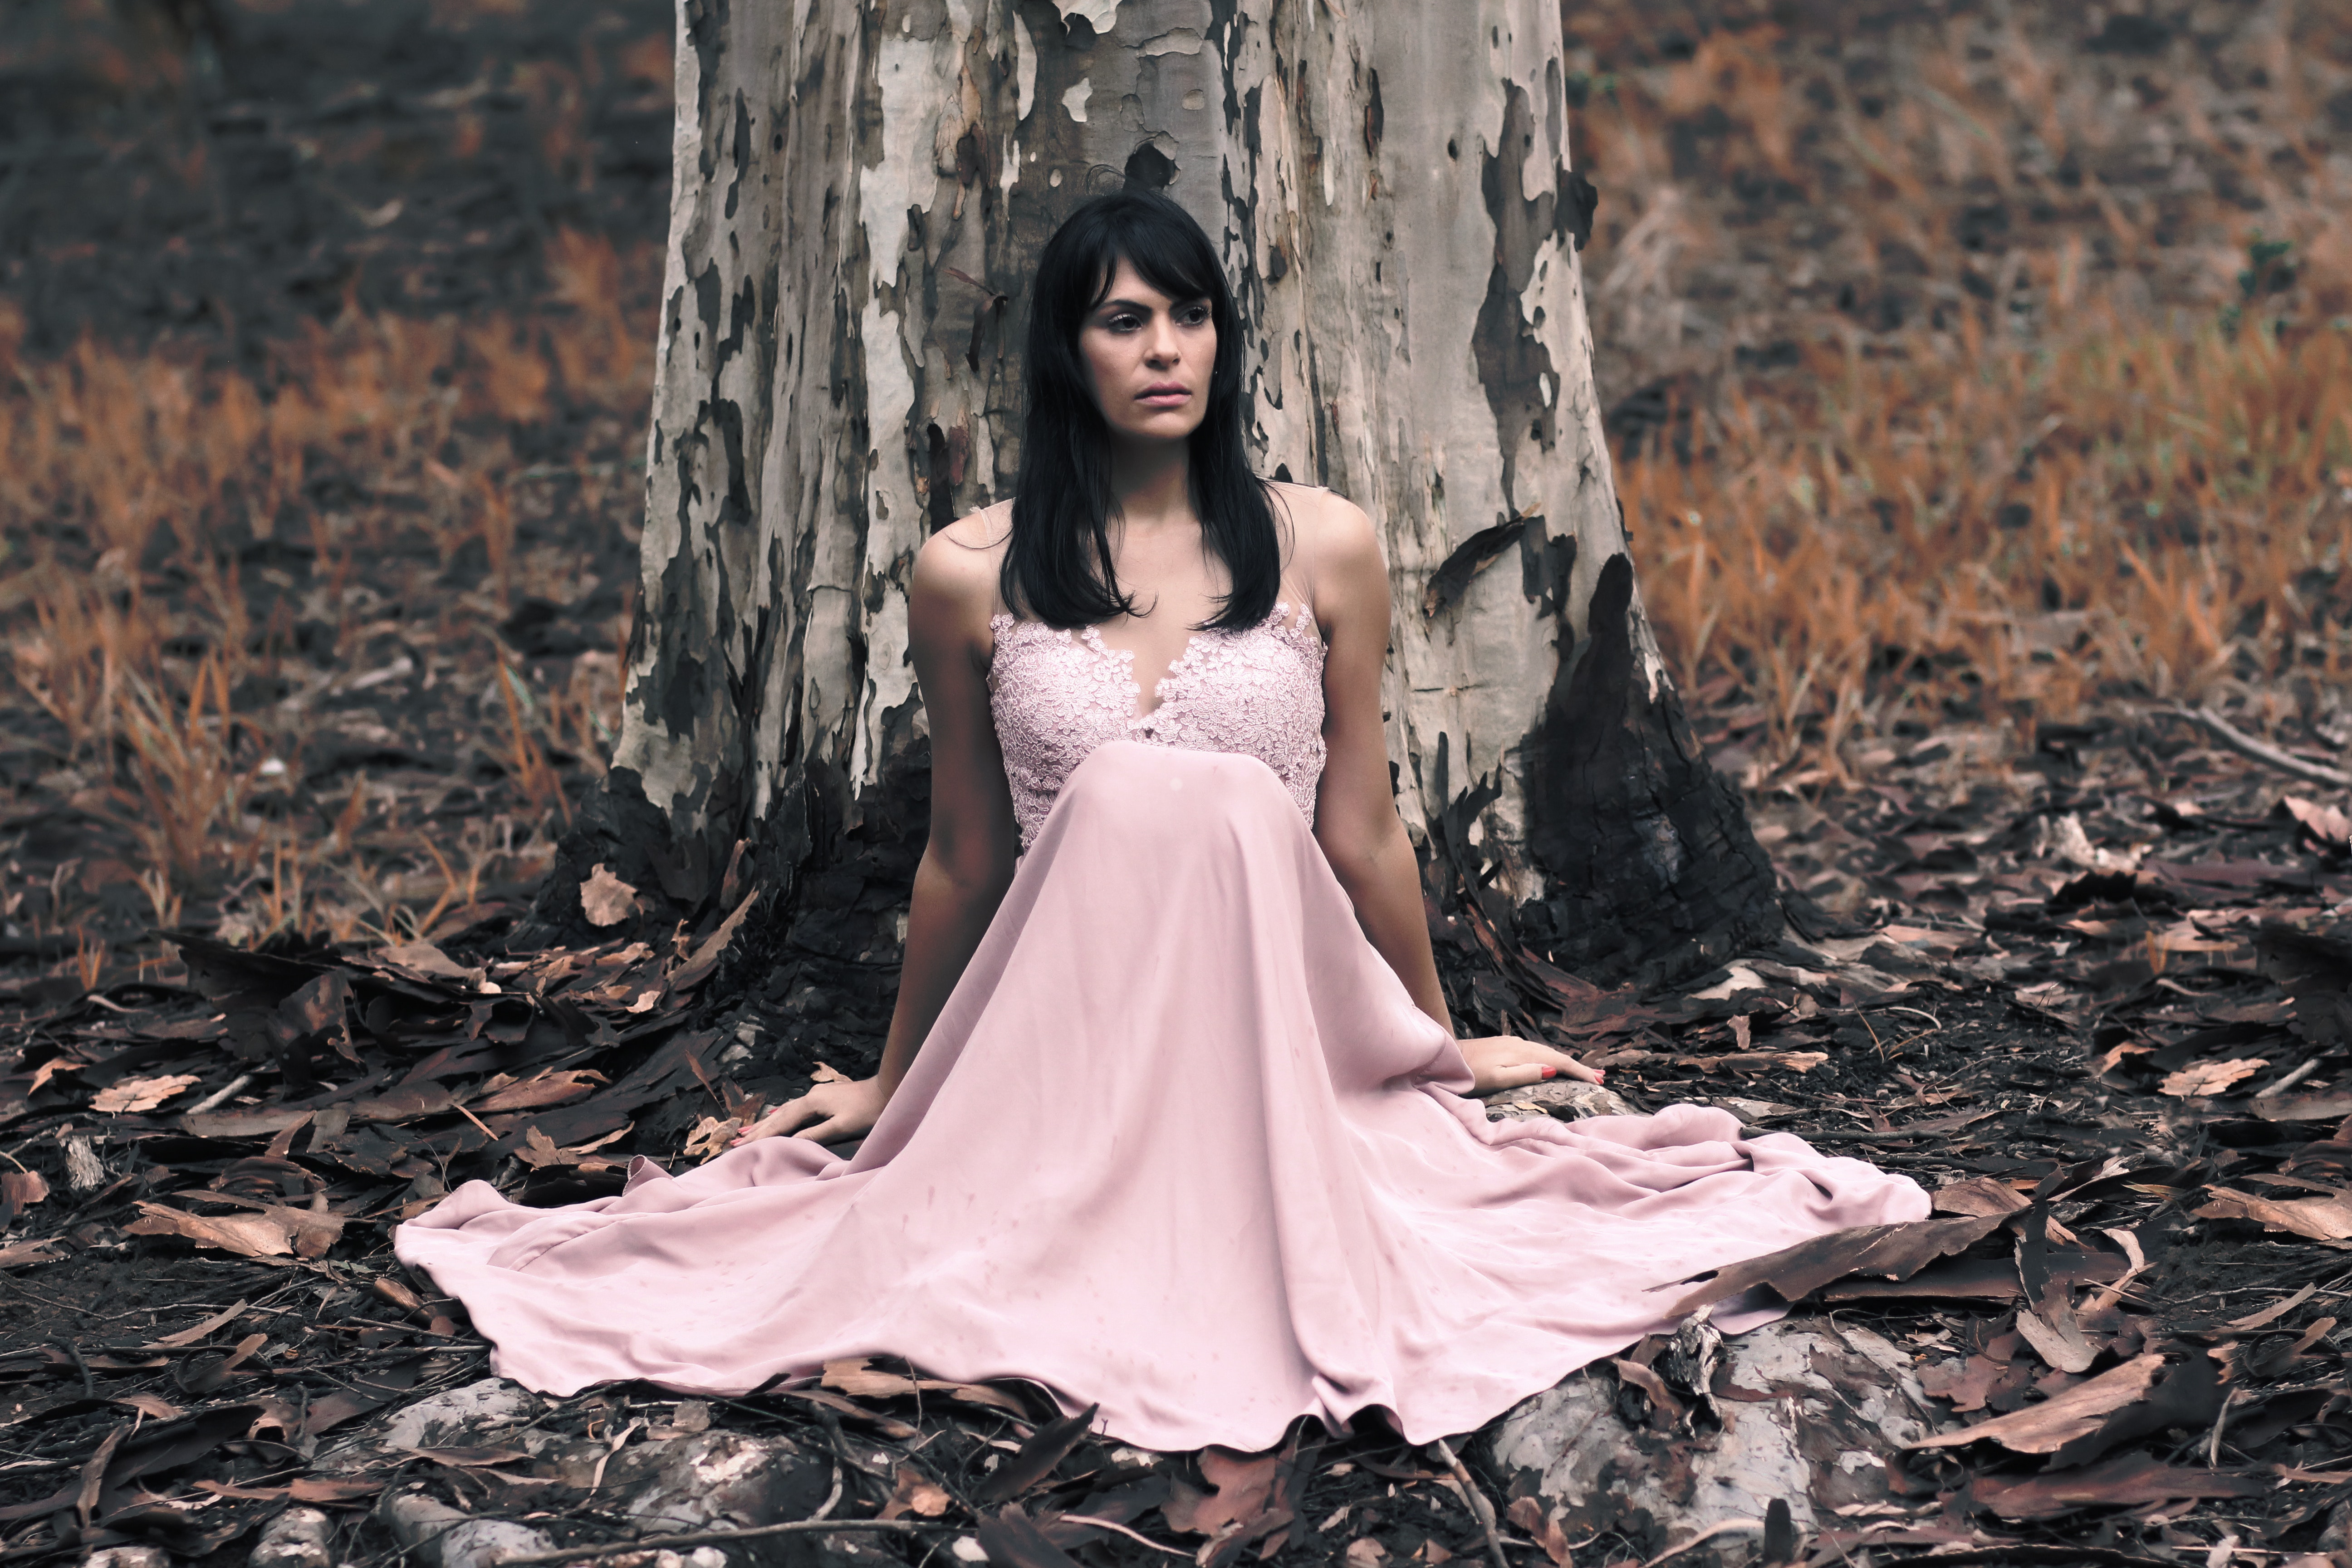 Shallow Focus Photography of Black Haired Woman in Pink Sleeveless Dress Sitting in Front of Tree, Adult, Outdoors, Woman, Wedding, HQ Photo